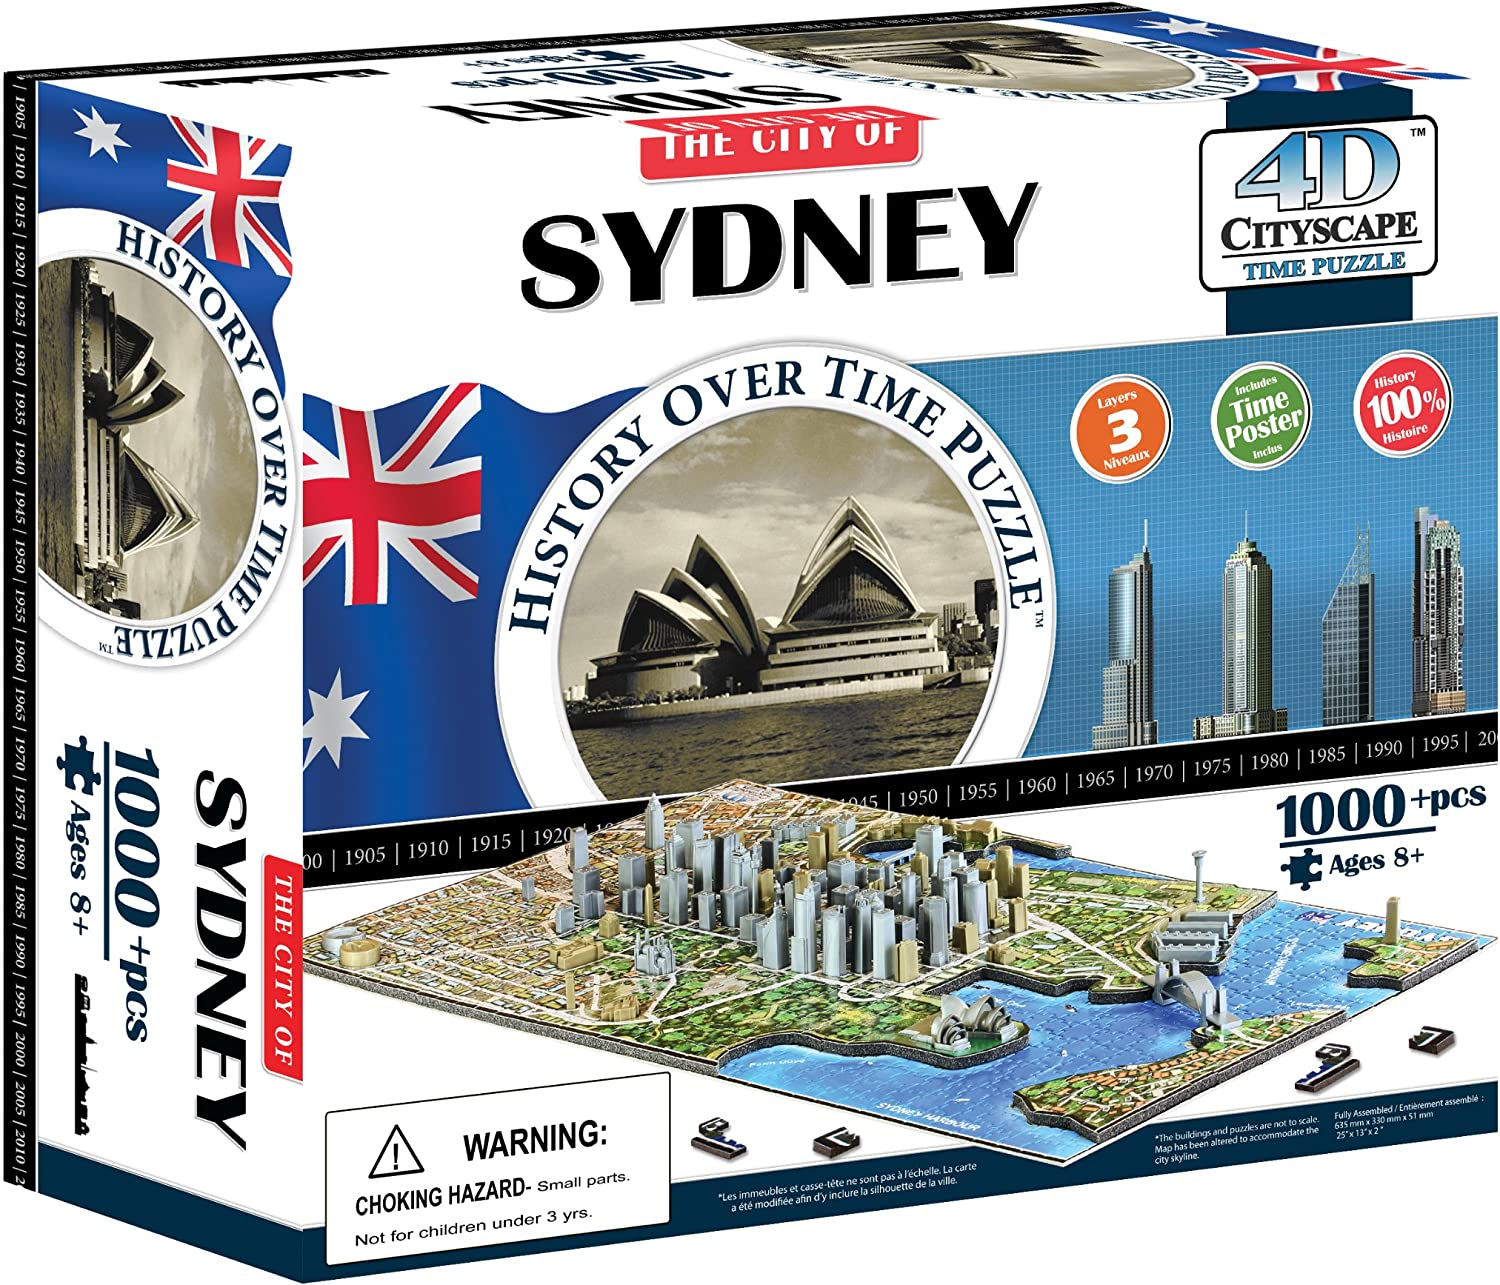 4D Special price for a Jacksonville Mall limited time Cityscape Sydney Puzzle Time